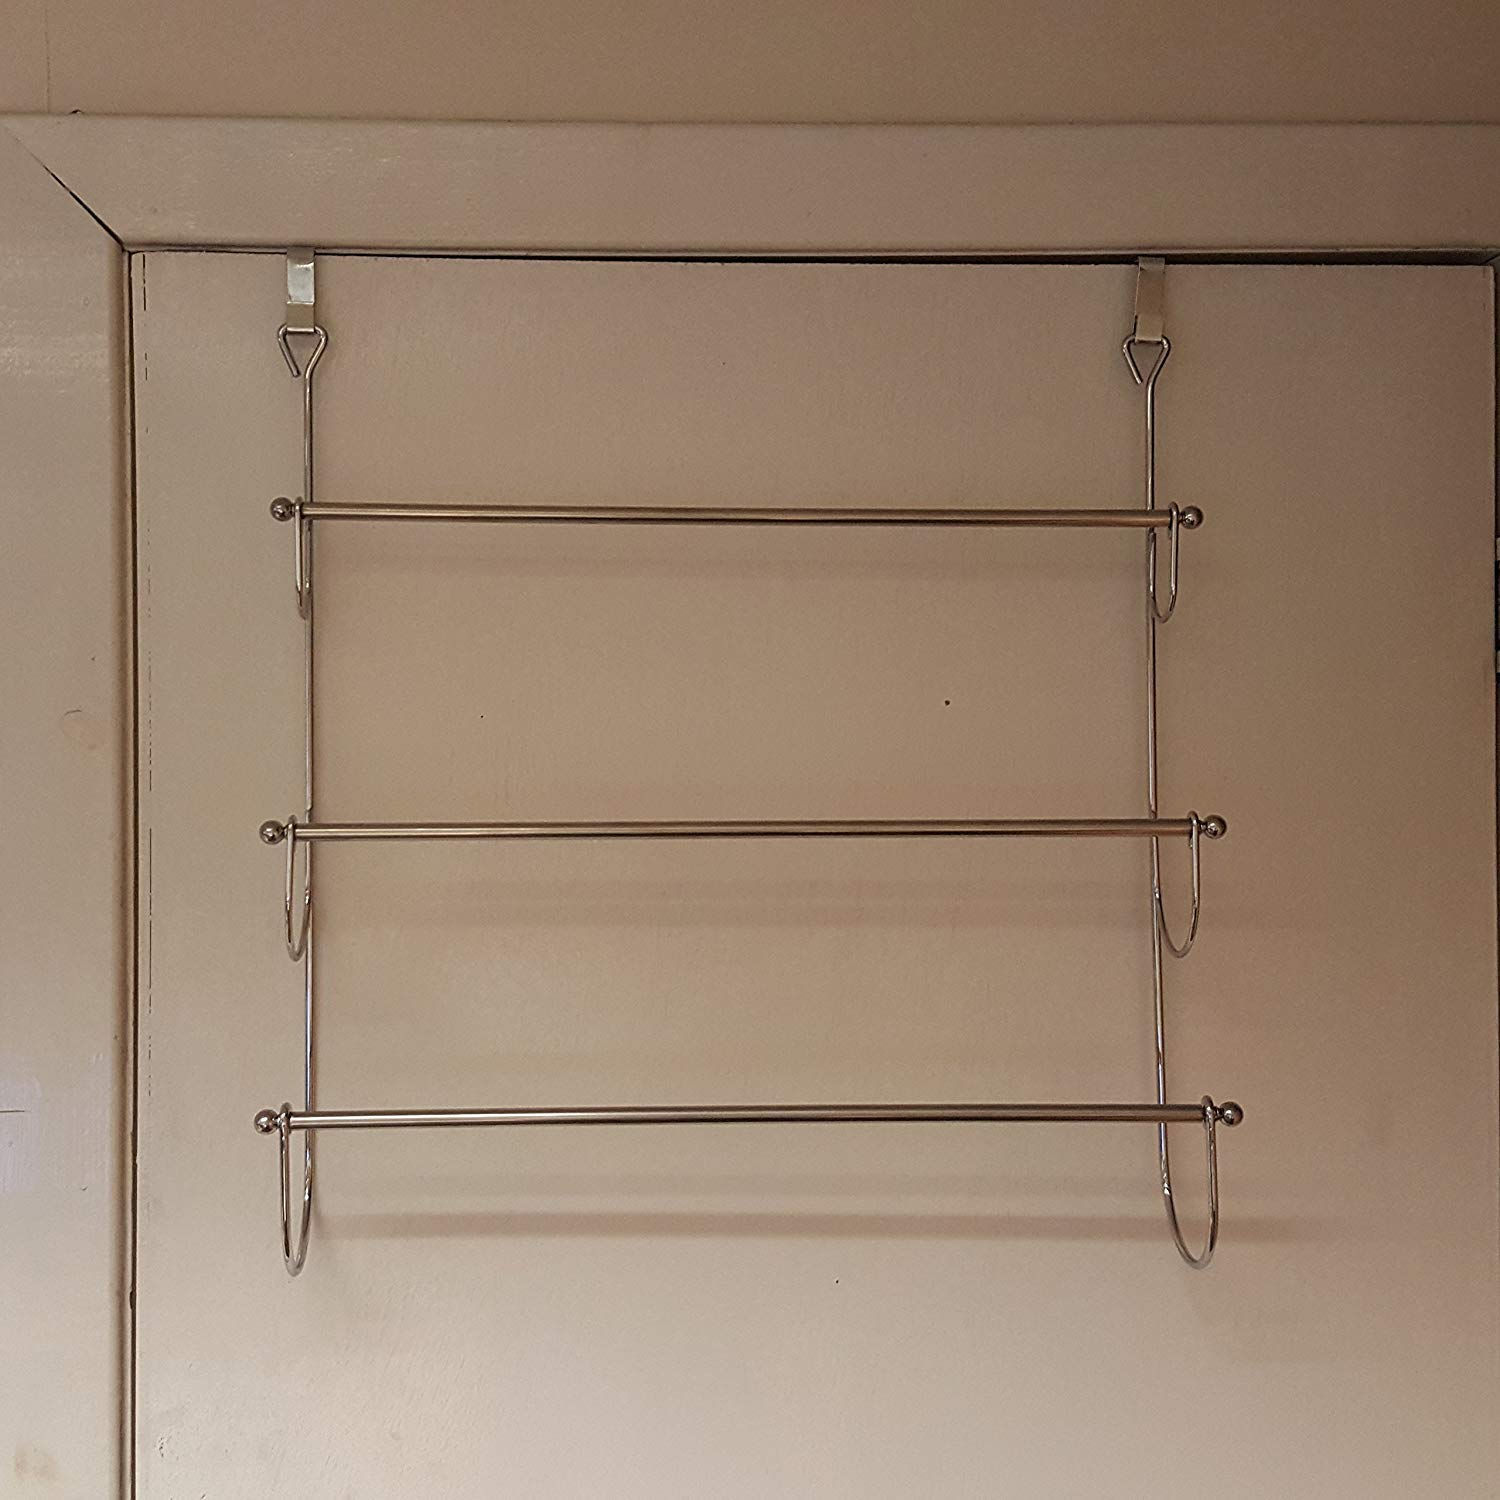 FunkyBuys® 3 Tires Over The Door Chrome Kitchen Or Bathroom Towel Rail Rack, Bedroom Cloth Hanger Organizer Caddy (SI-HH1003)